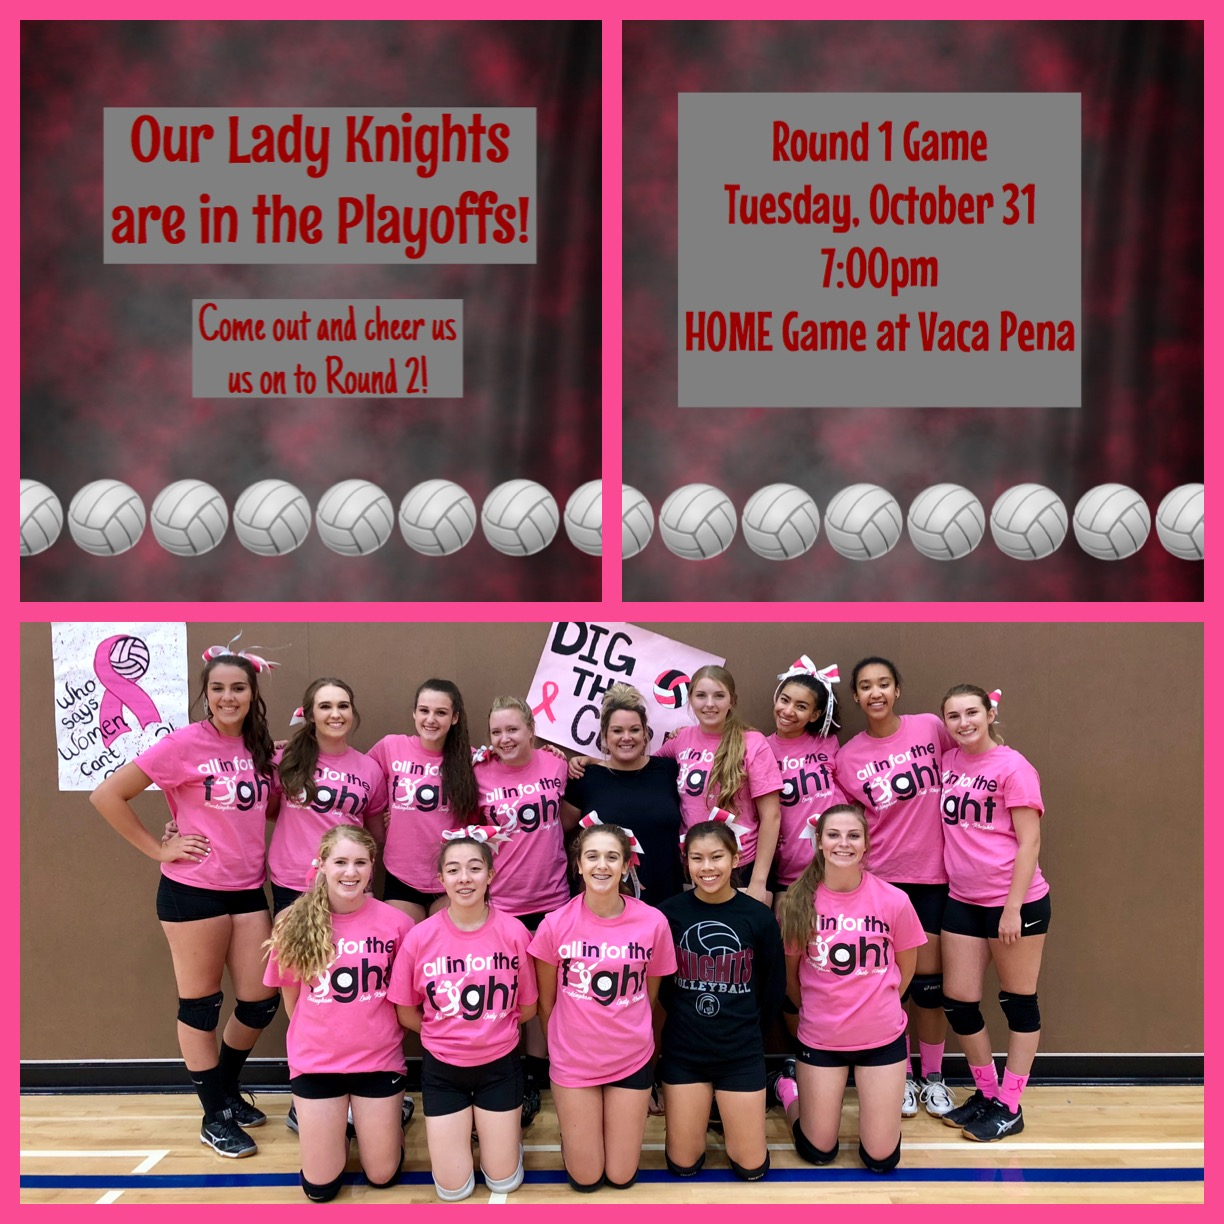 Our lady knights are in the playoffs